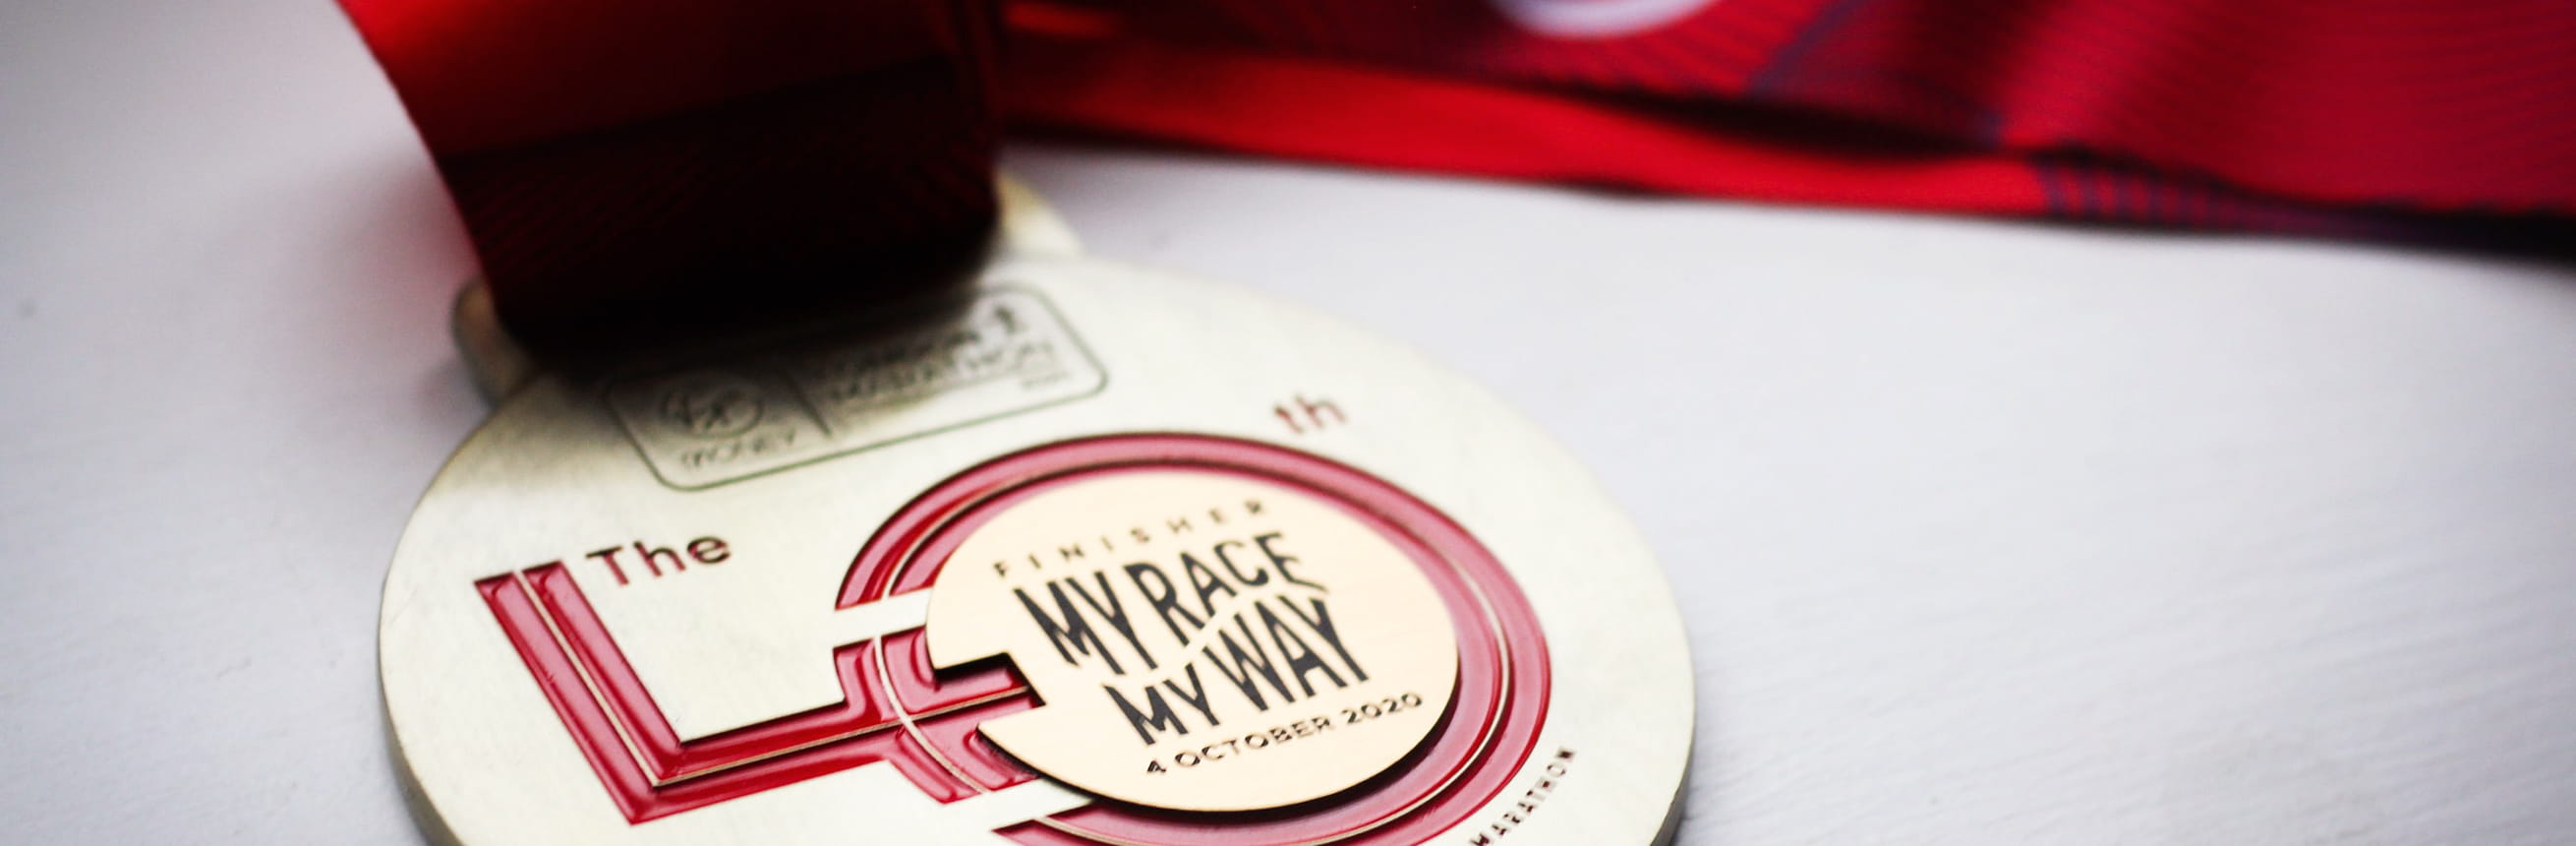 The 40th Race medal